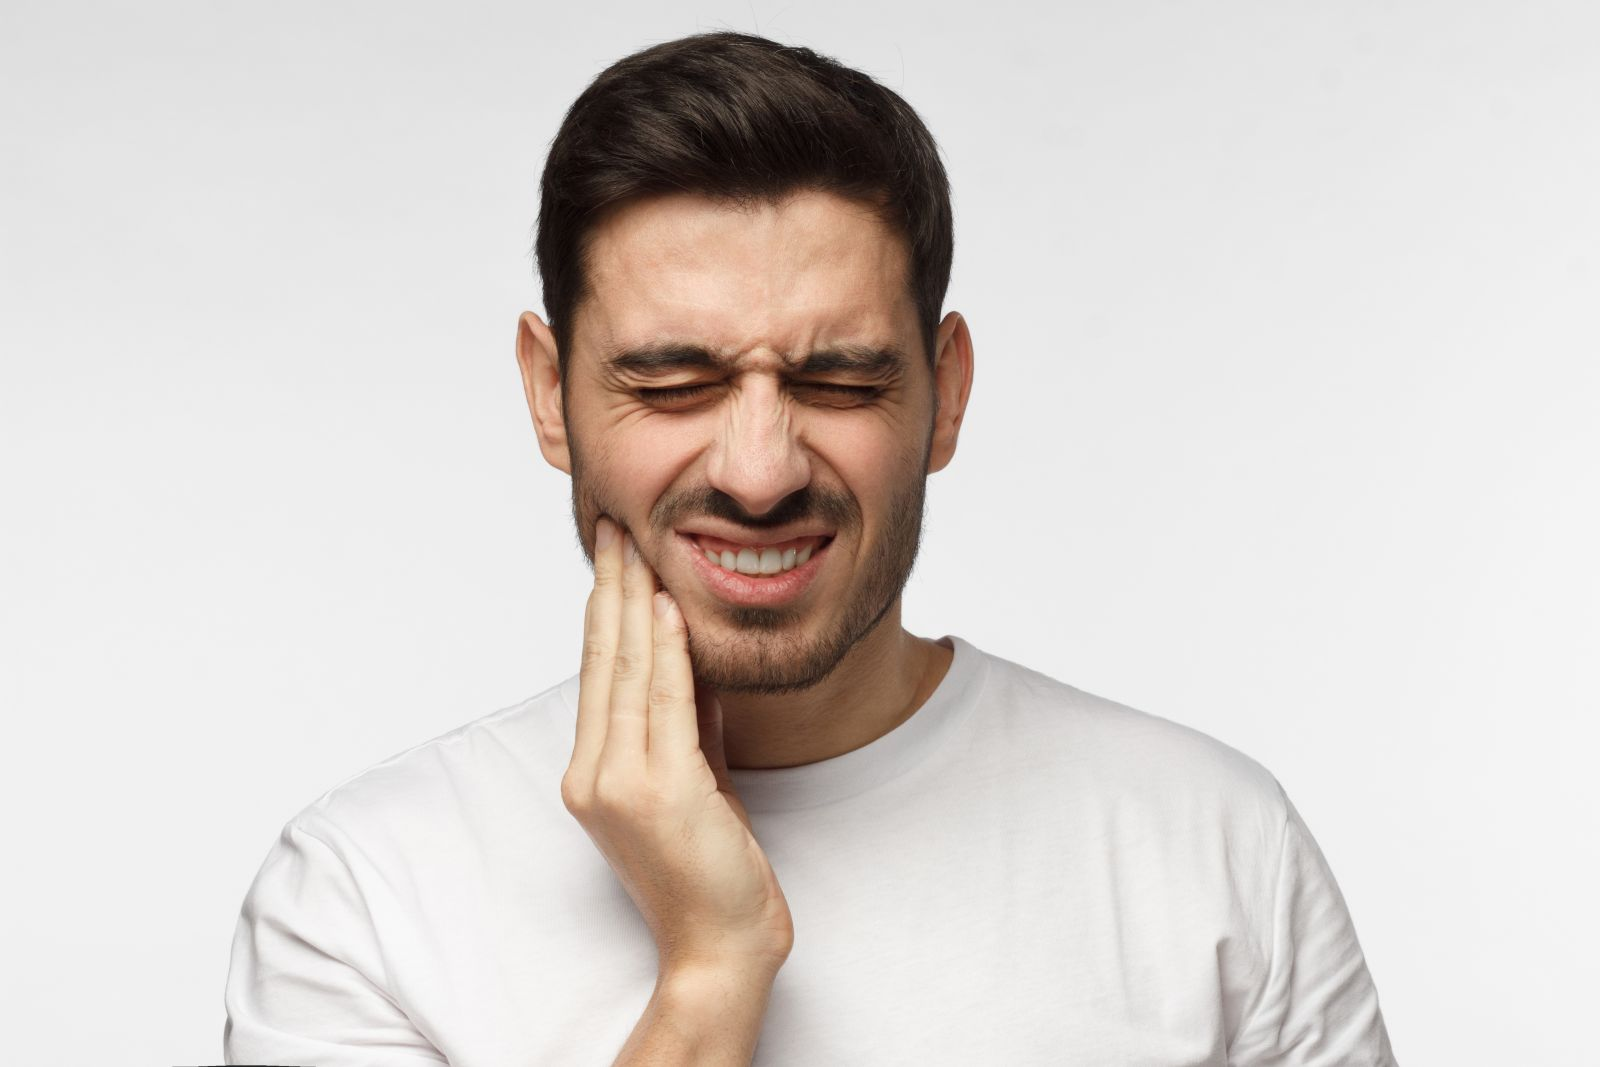 Male with jaw pain